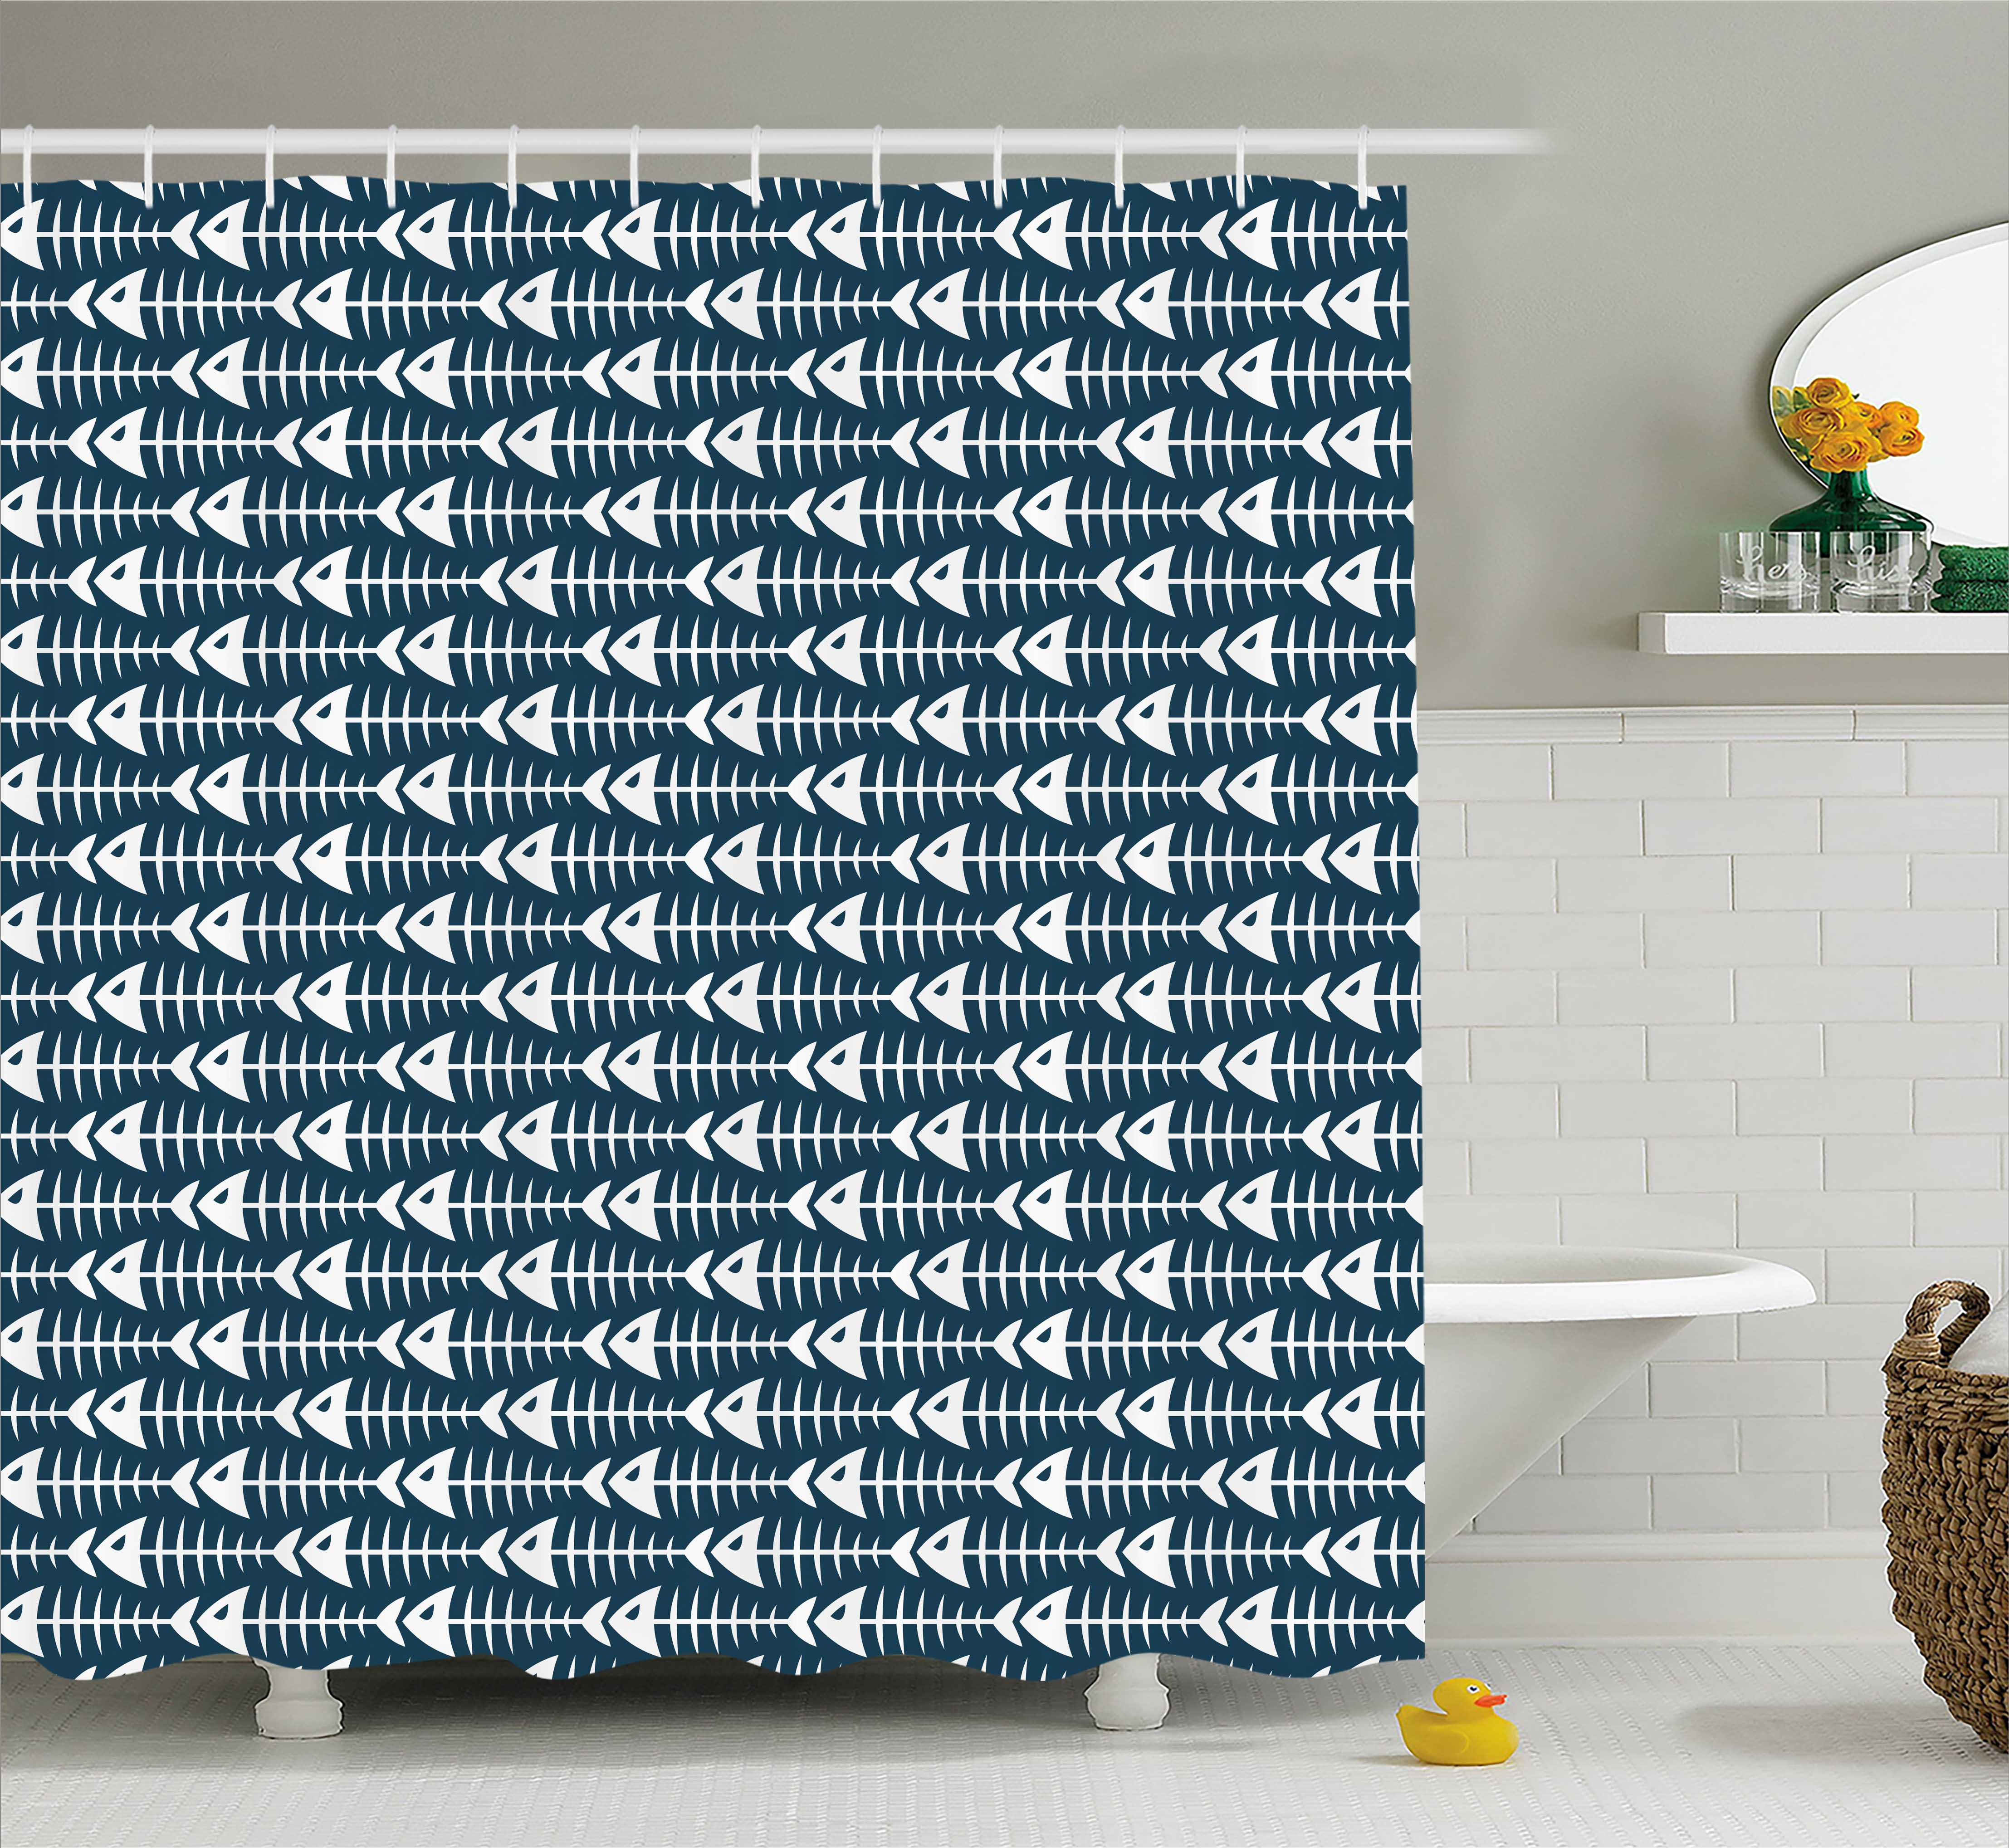 Animal Decor Shower Curtain, Fish Bone Skeleton Pattern with Spines Sea Underwater Theme Illustration, Fabric Bathroom Set with Hooks, 69W X 70L Inches, Dark Blue White, by Ambesonne